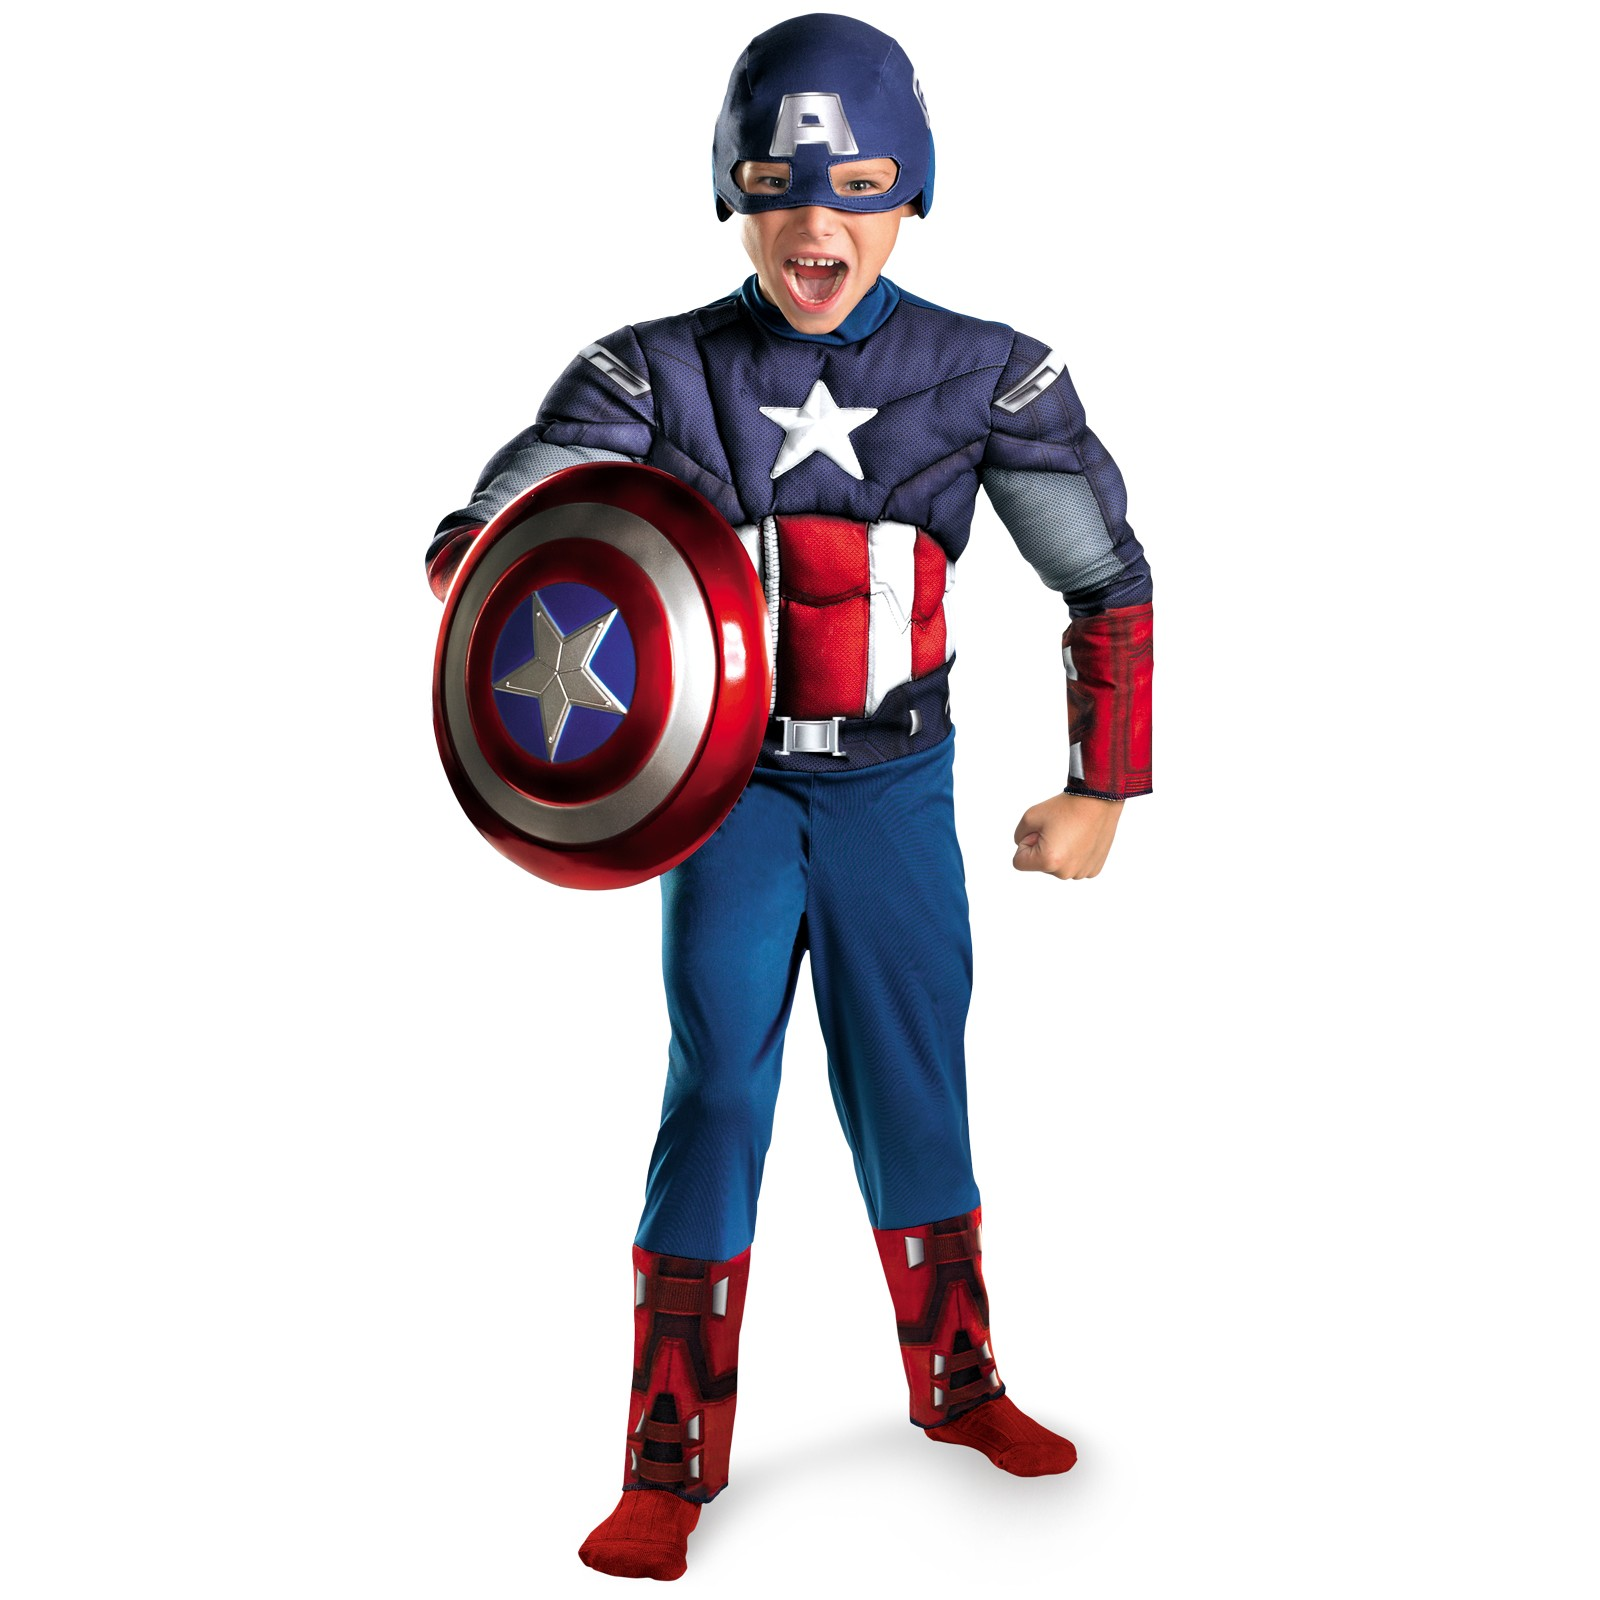 AVENGERS CAPTAIN AMERICA WITH MUSCLE TORSO